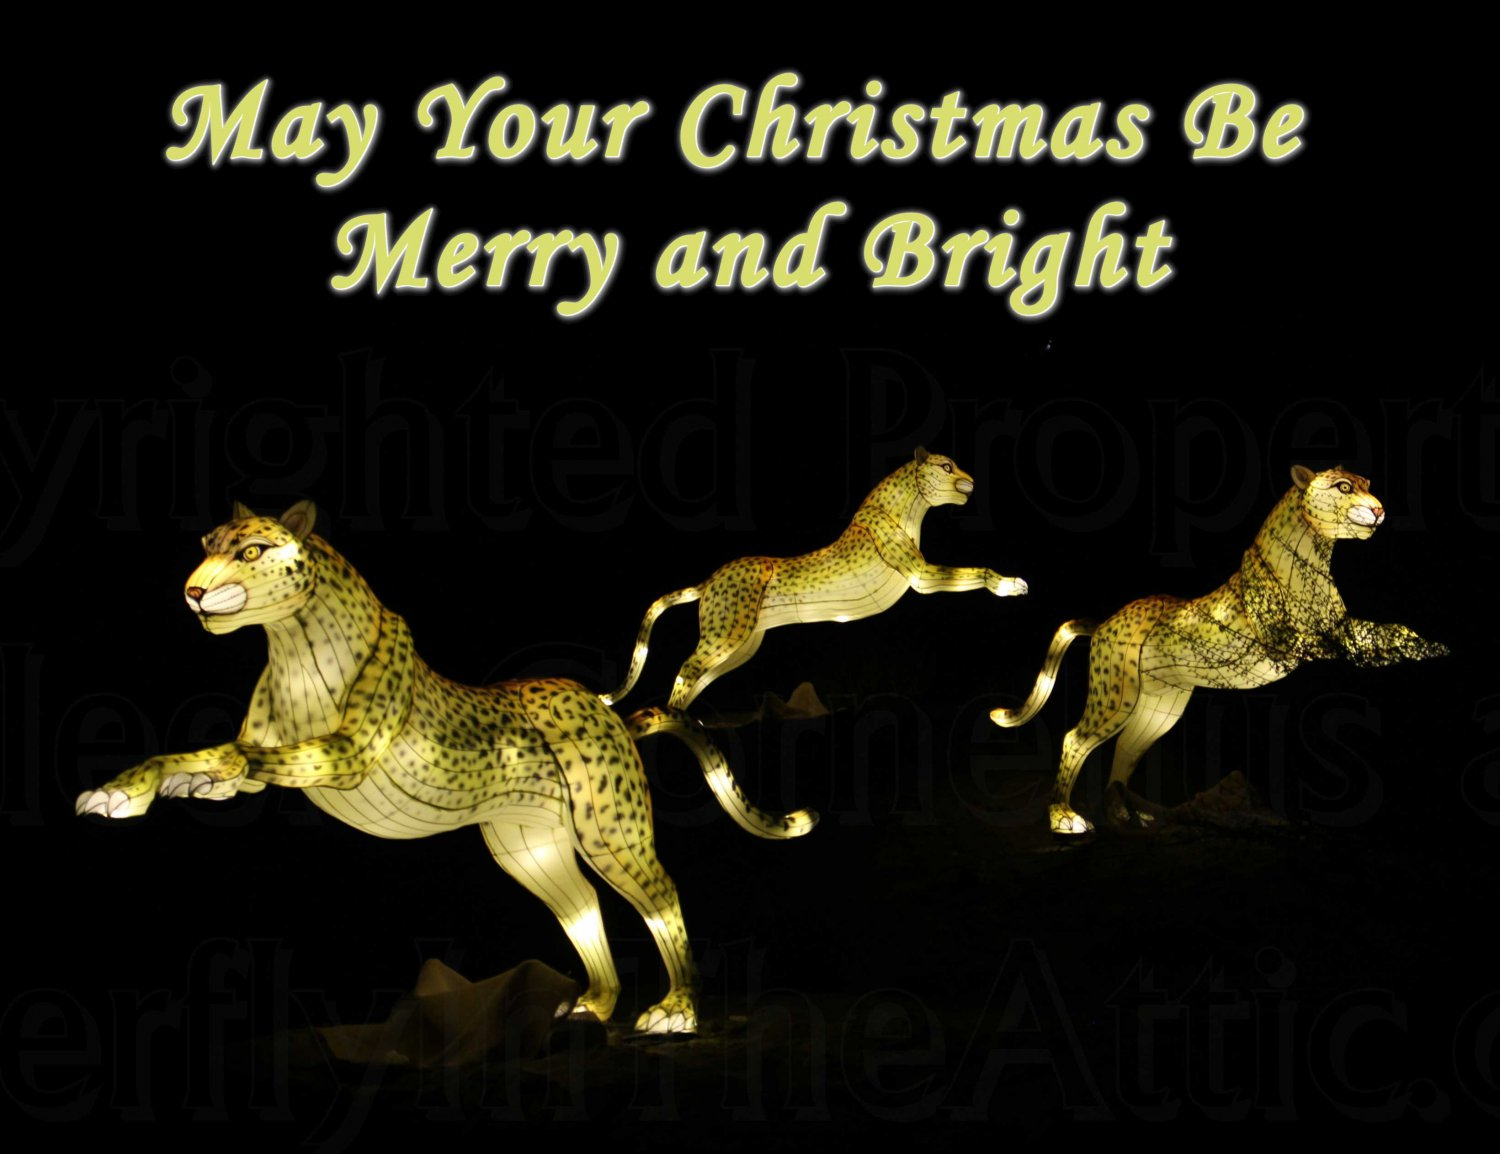 Handmade Christmas Cards Set of 5, Cheetah Family Night May Your Christmas be Merry and Bright